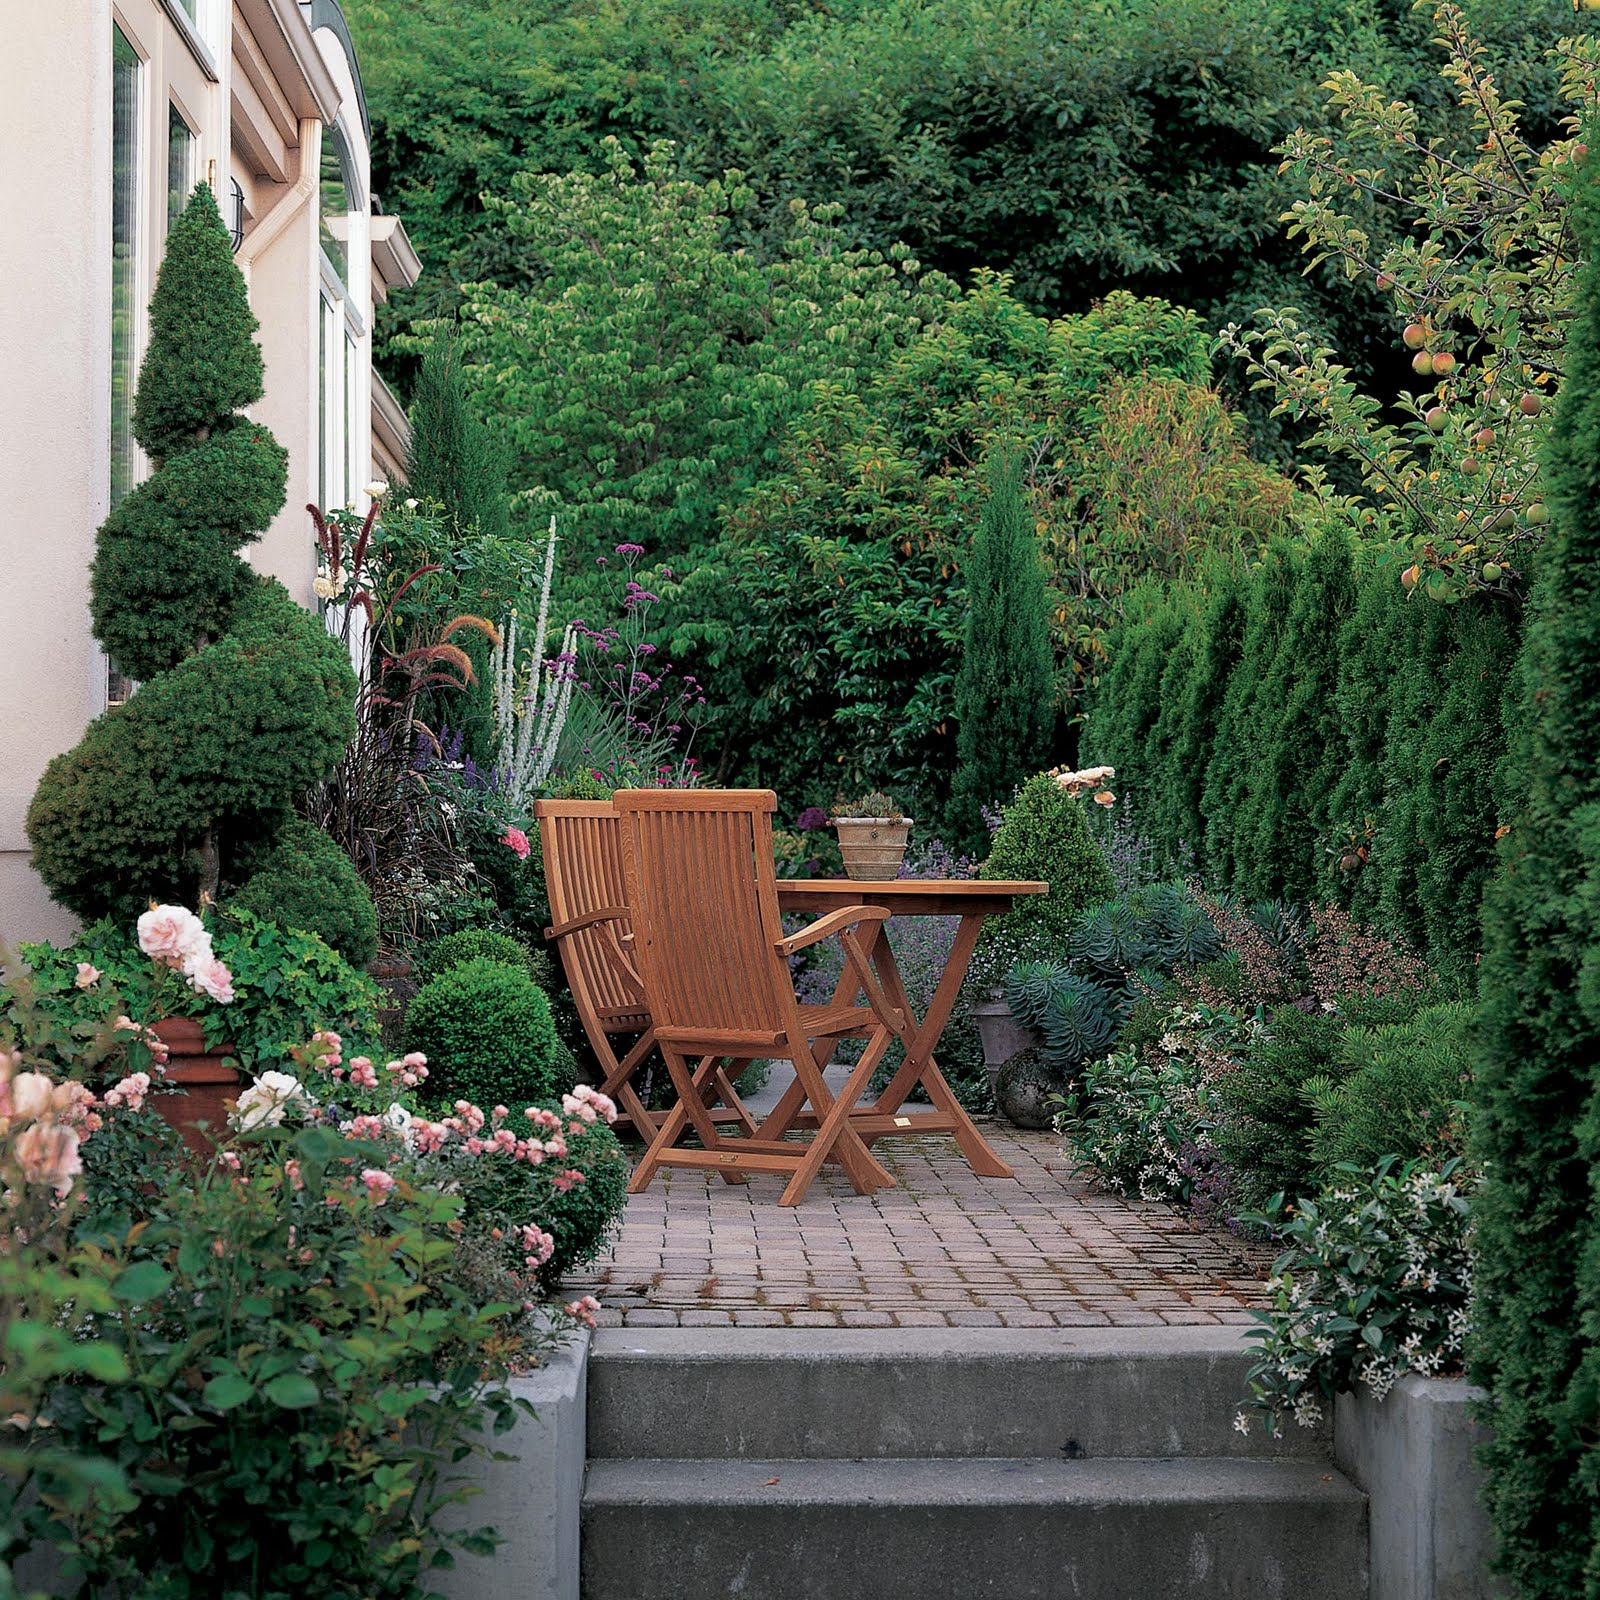 Backyard Privacy Ideas With Plants :  Privacy, Innovative Ways to Turn Your Outdoor Space into a Peaceful